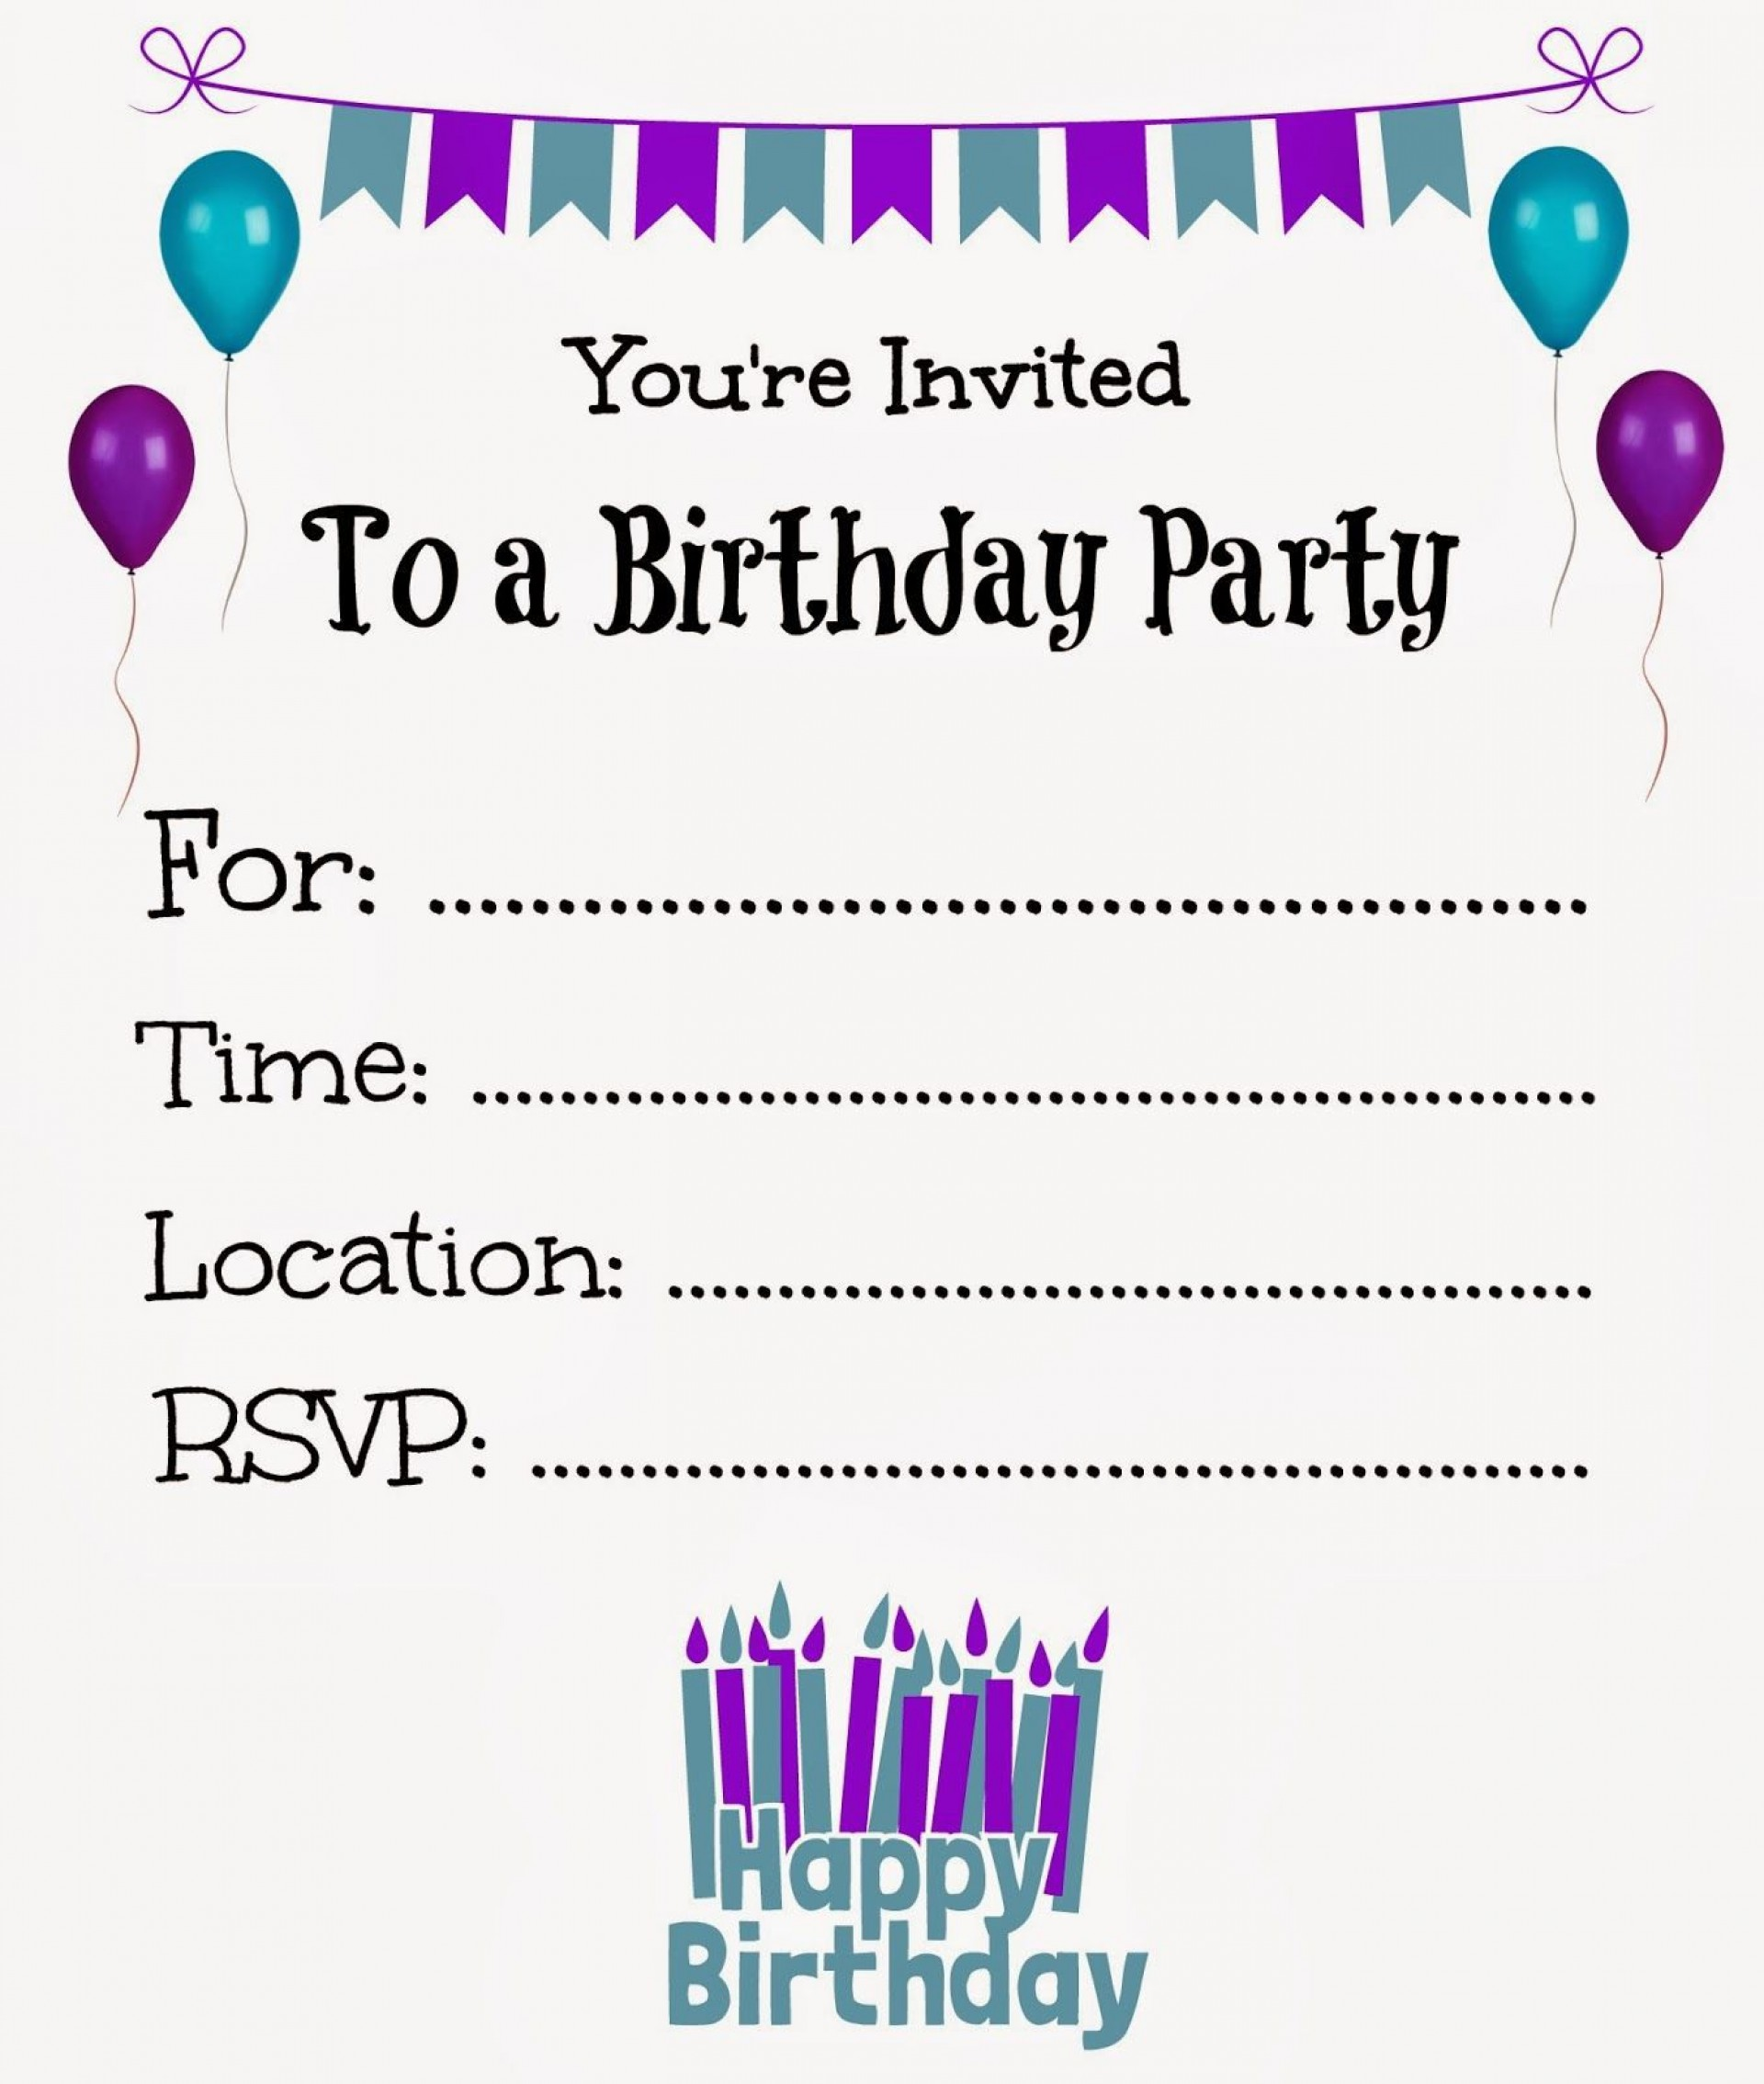 009 Stunning Free Party Invitation Template With Photo Idea  Christma Photoshop1920